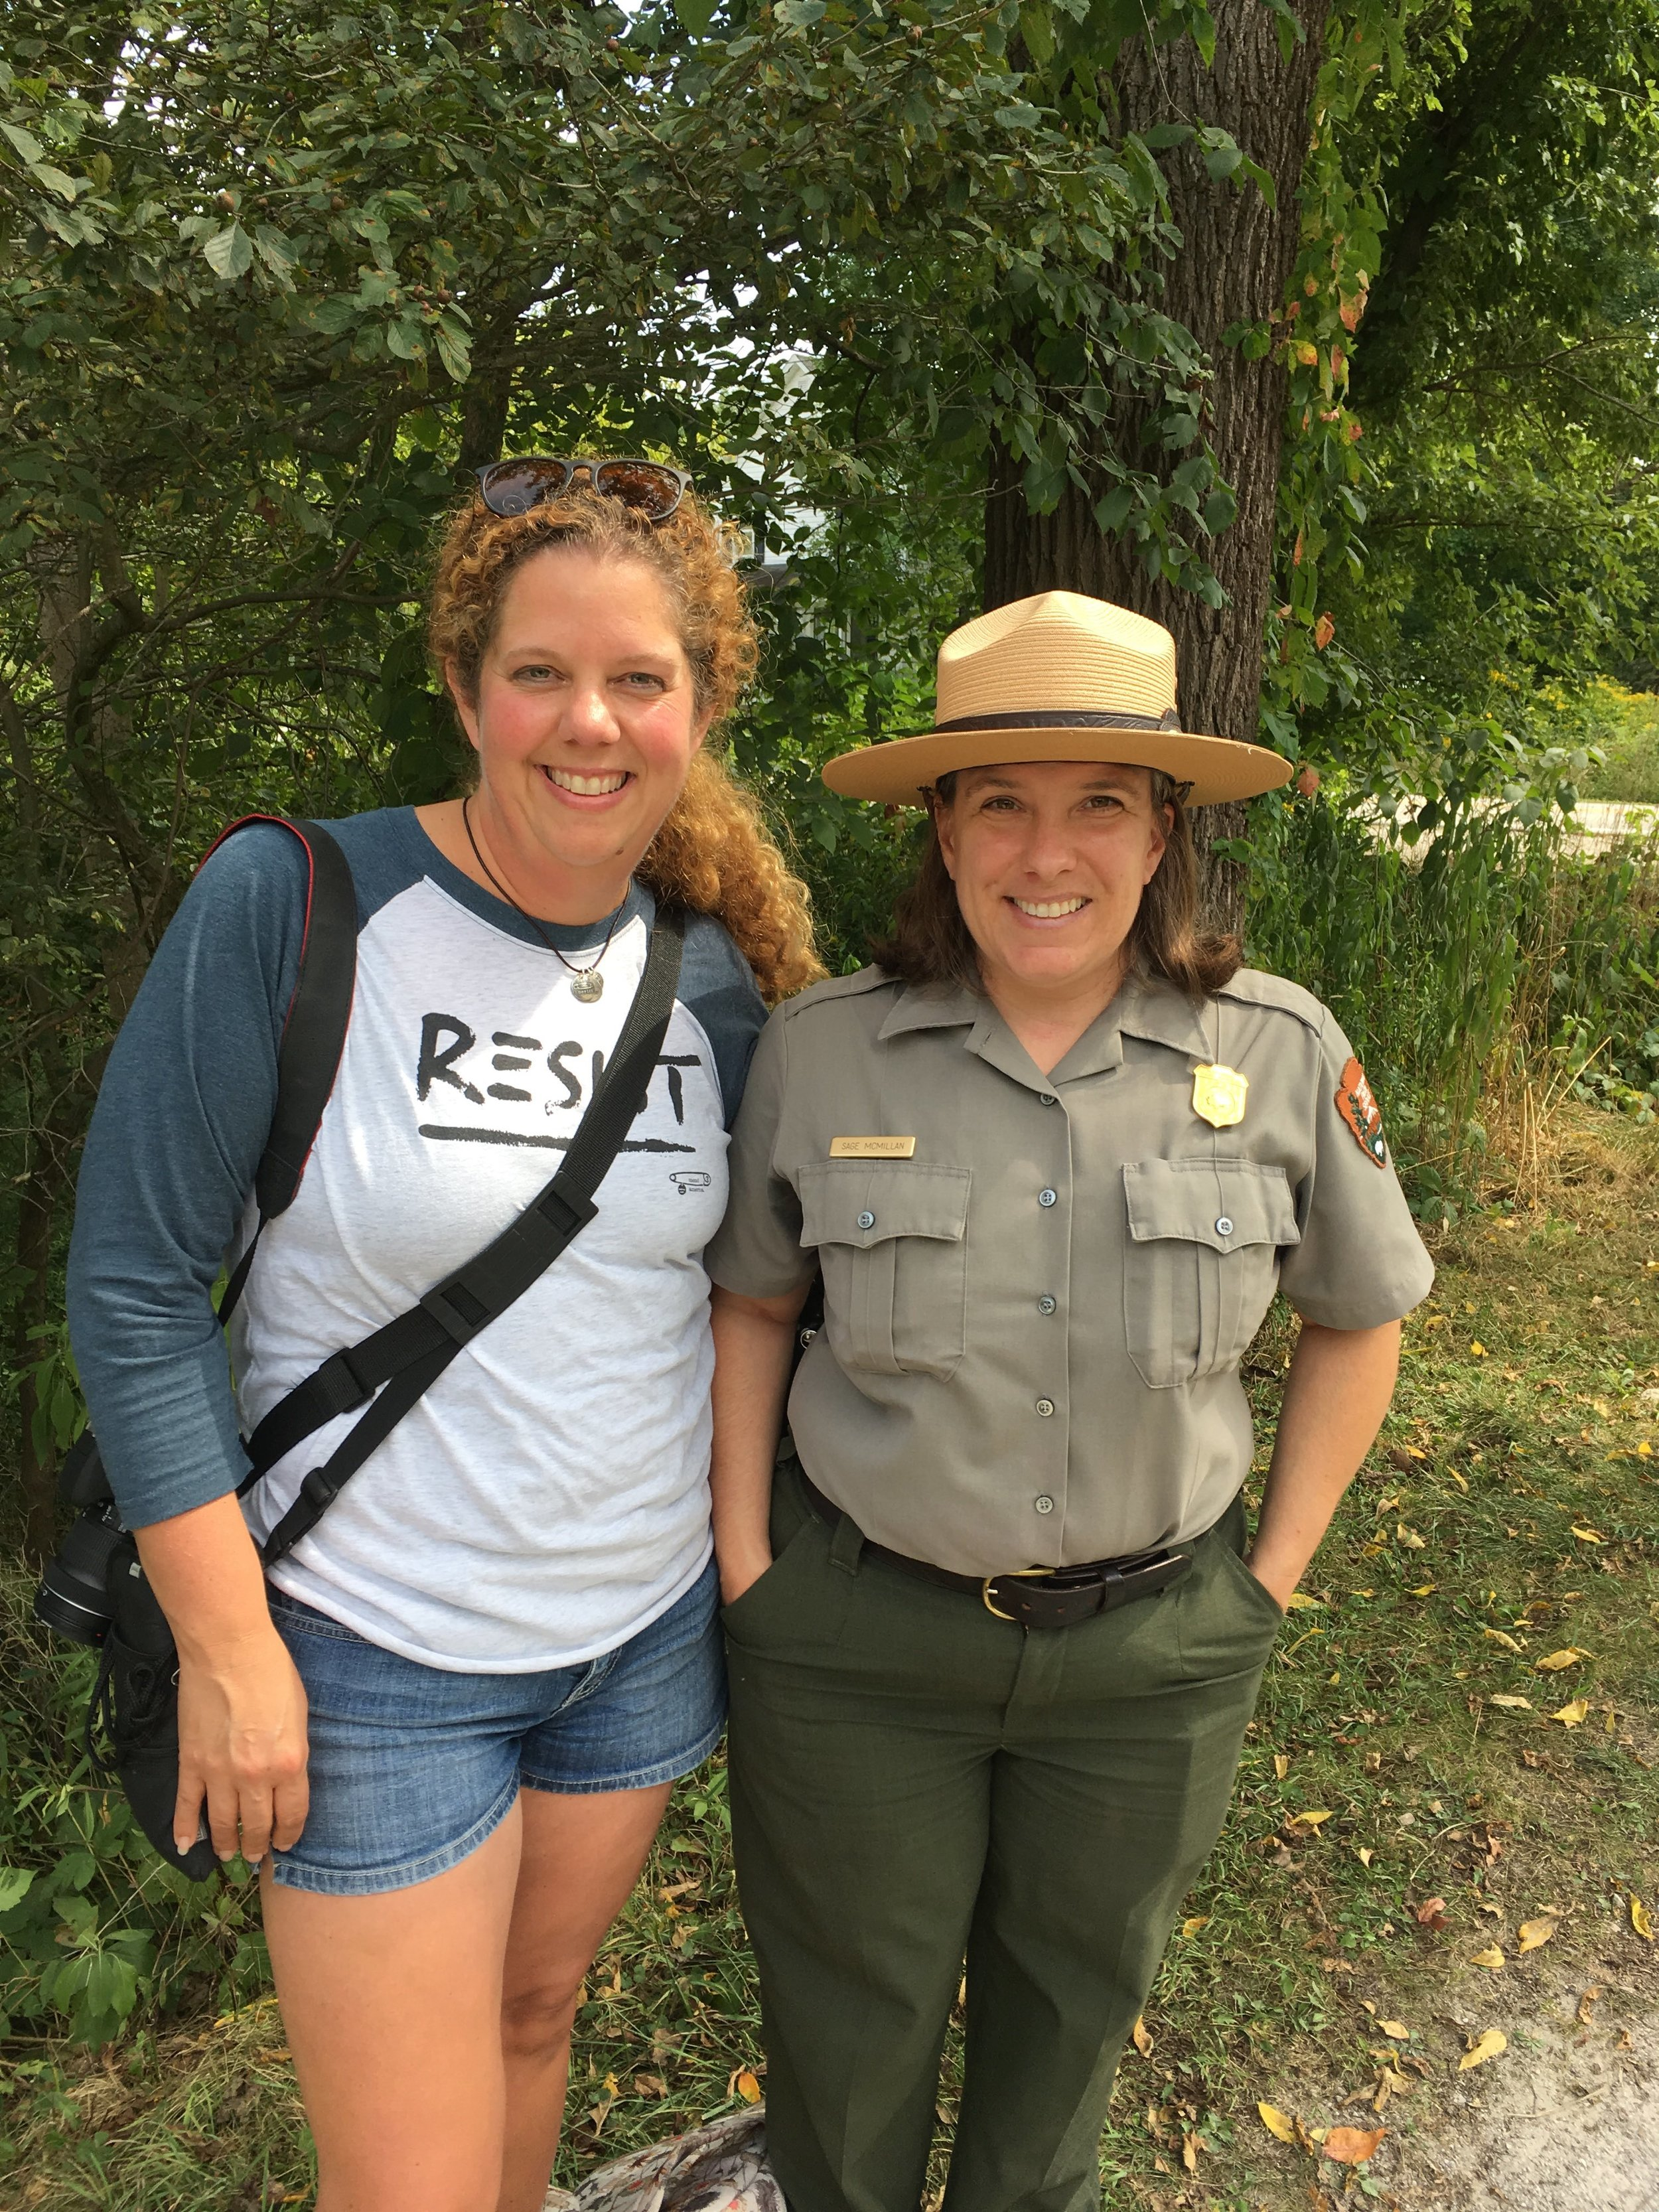 Park Ranger Sage and I having a chat on the path